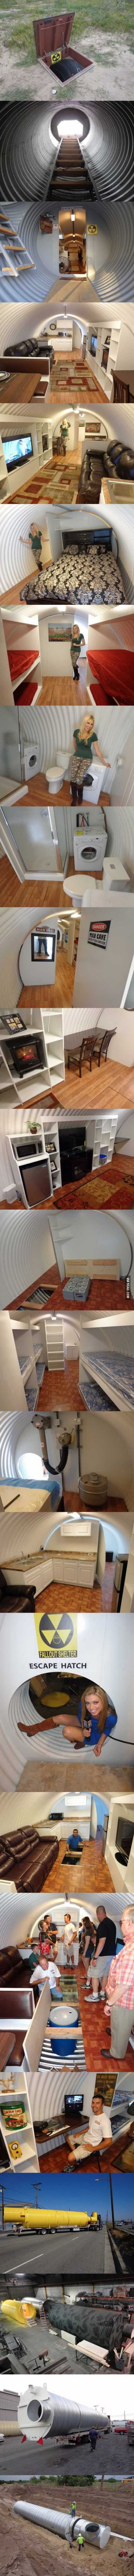 A fall-out shelter that is better than people's houses #bunkerplans